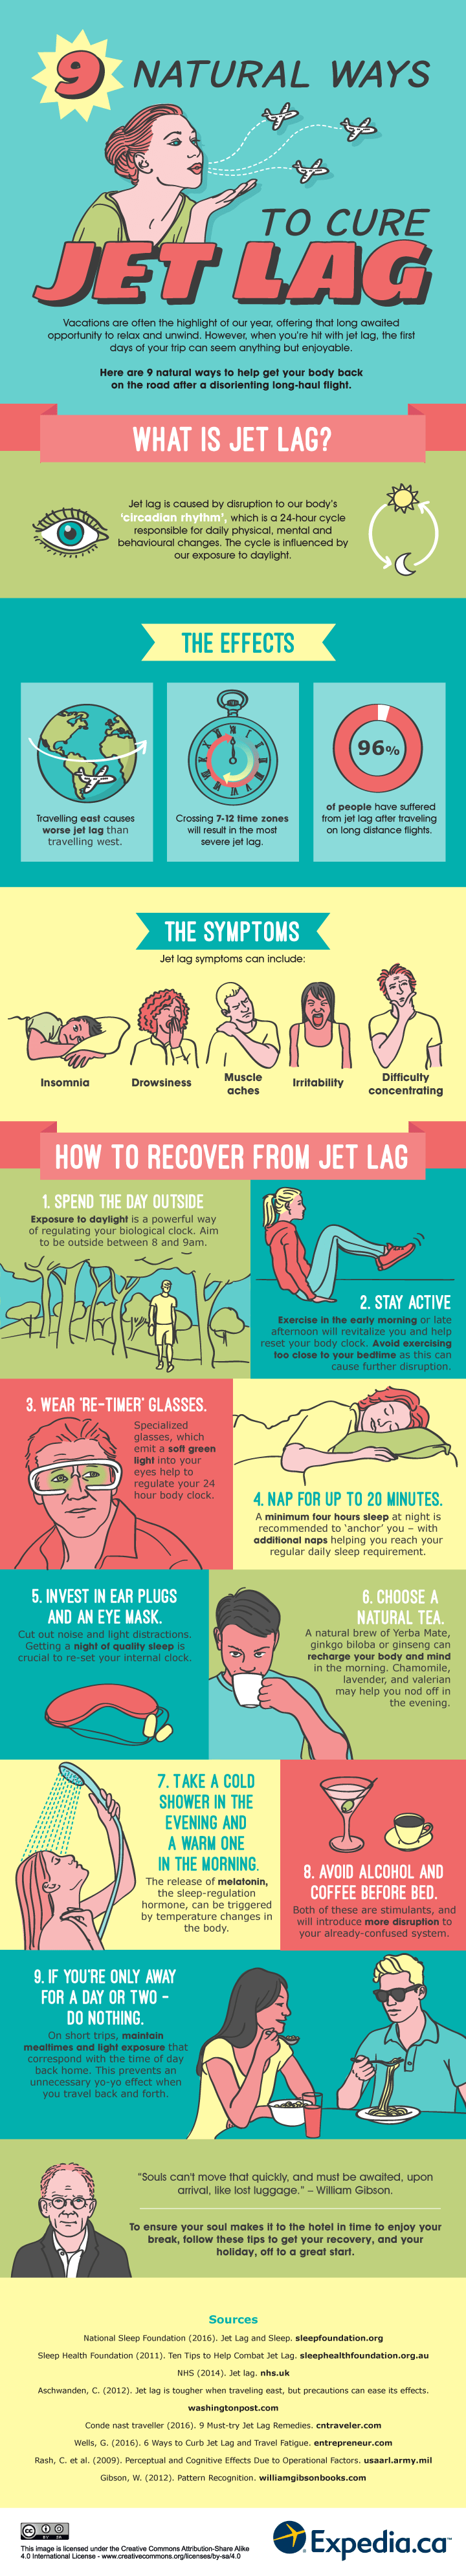 9-natural-ways-to-cure-jet-lag--DV1